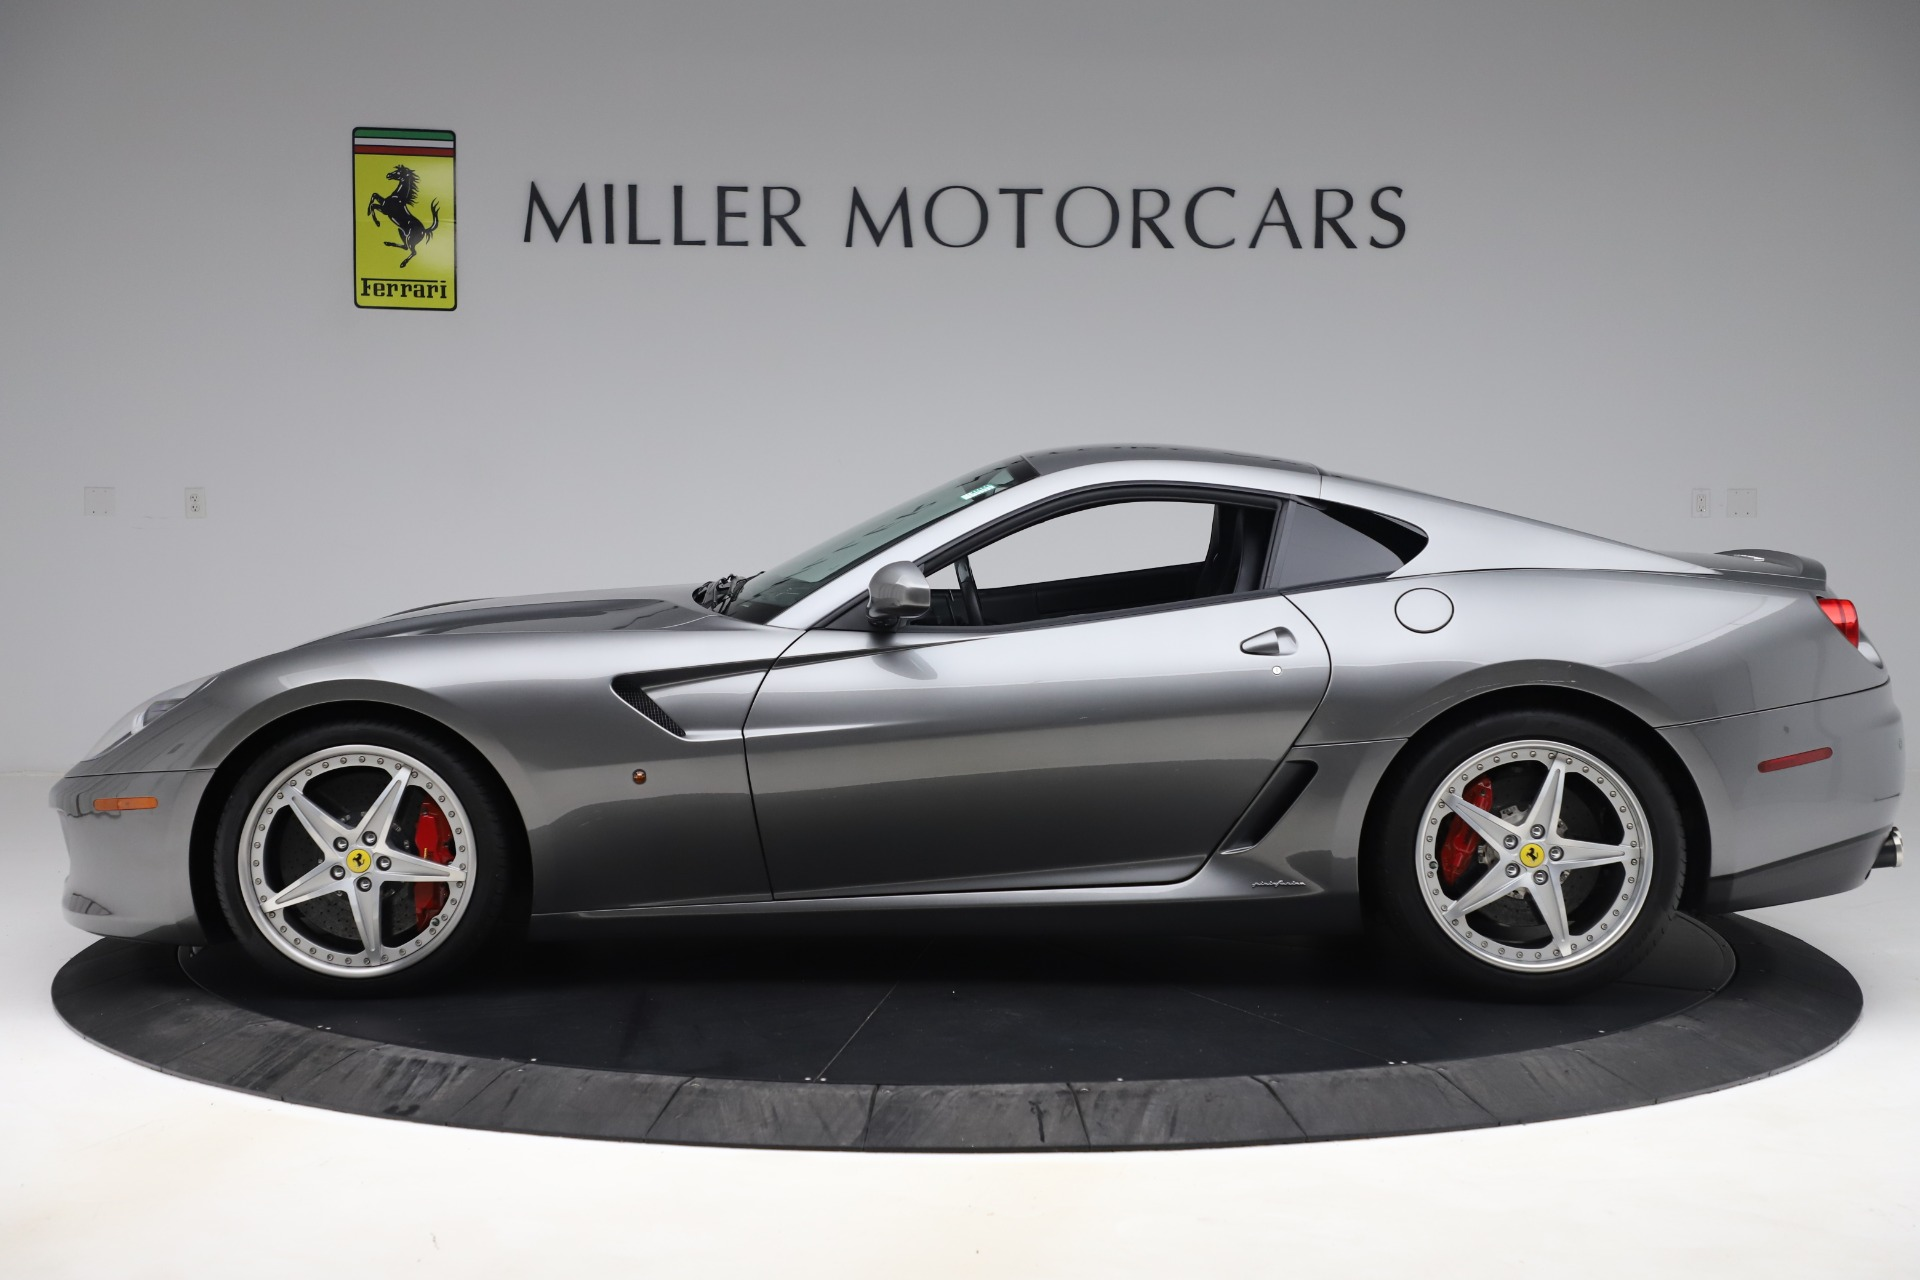 Used 2010 Ferrari 599 GTB Fiorano HGTE For Sale In Westport, CT 3544_p3